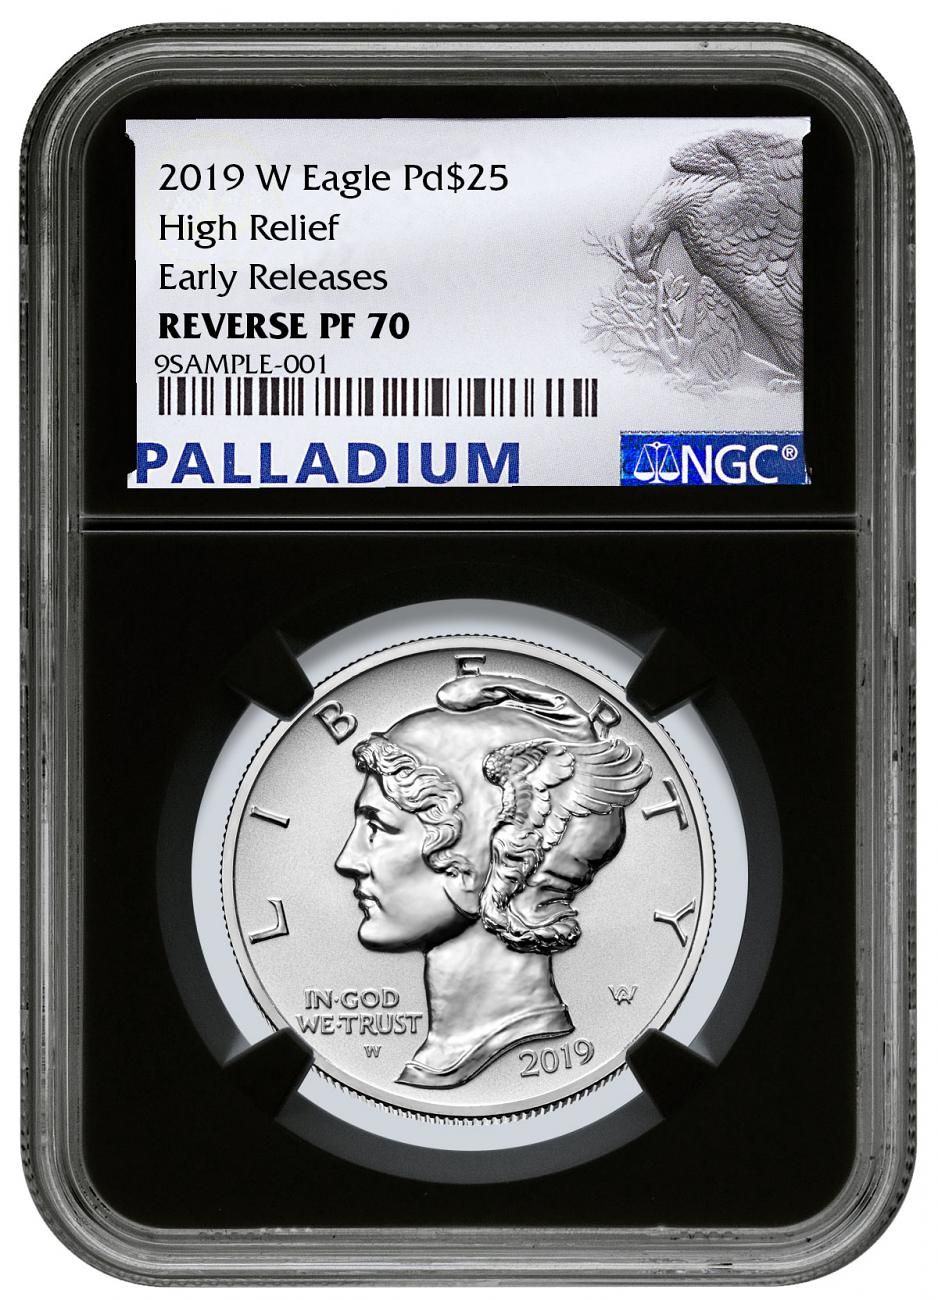 2019-W 1 oz High Relief Palladium Eagle Reverse Proof $25 Coin NGC PF70 ER Black Core Holder Palladium Label